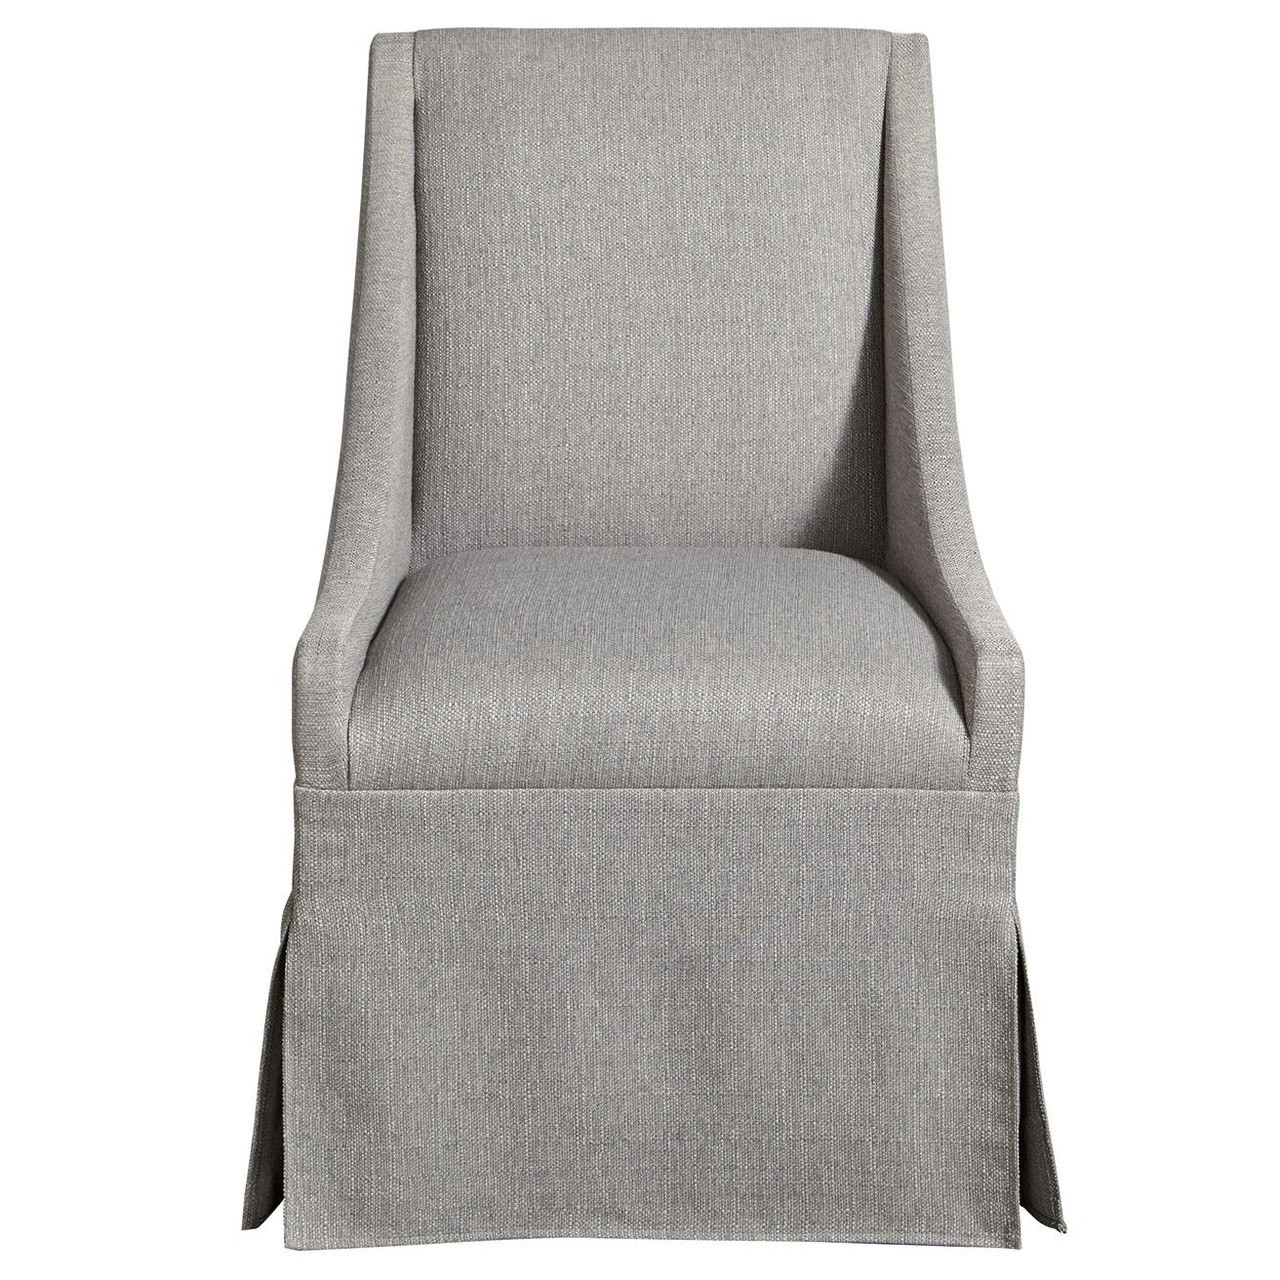 modern gray dining chairs desk chair sale townsend grey upholstered skirted zin home